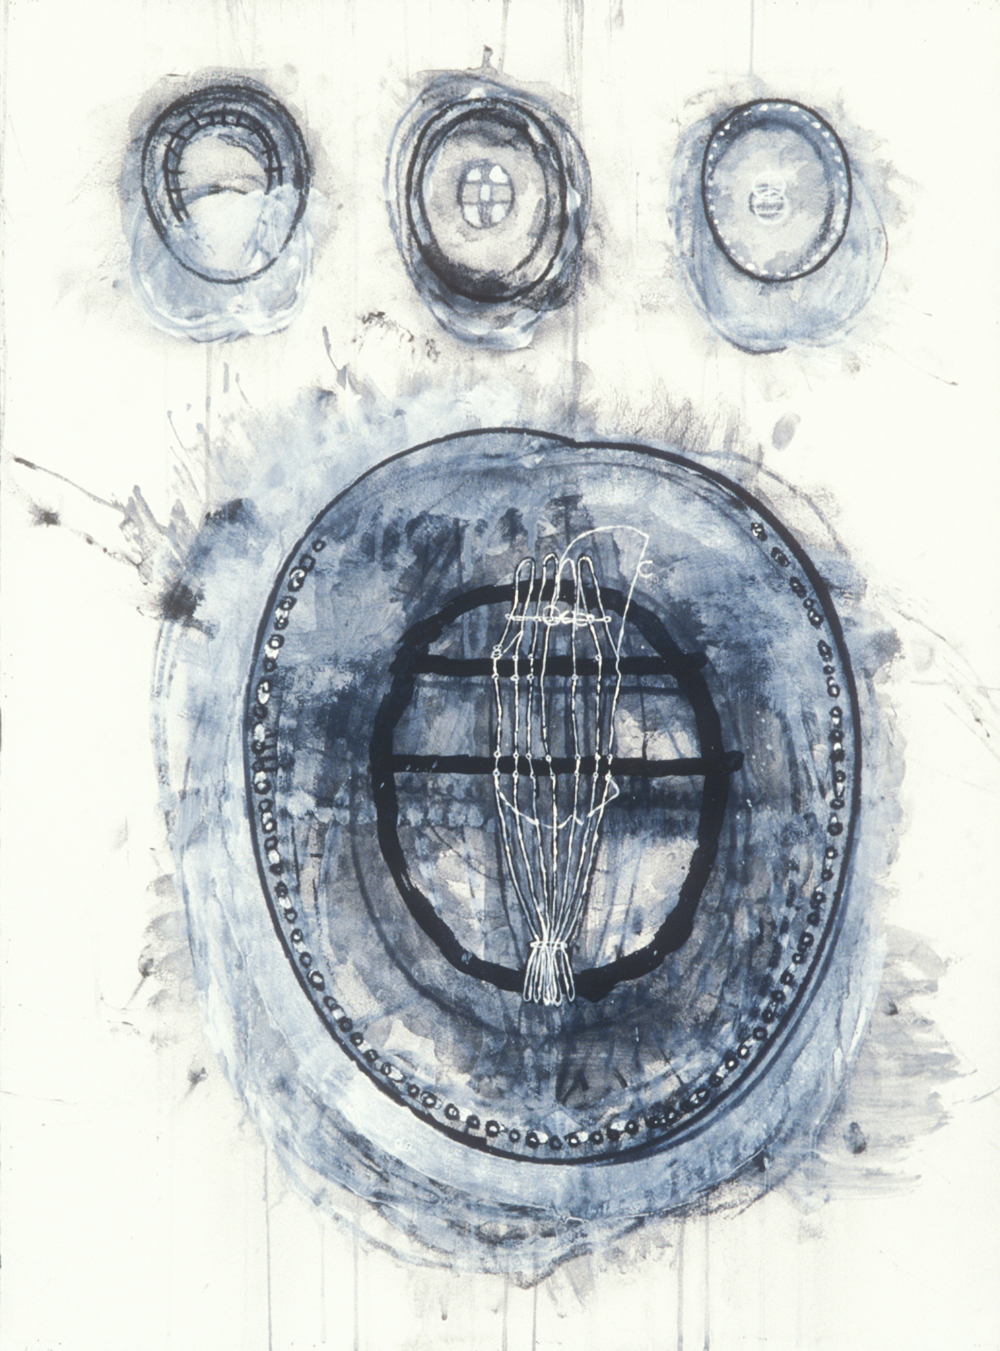 Elemental 22  , 1990, mixed media on paper, 29.5 x 21.5 in.